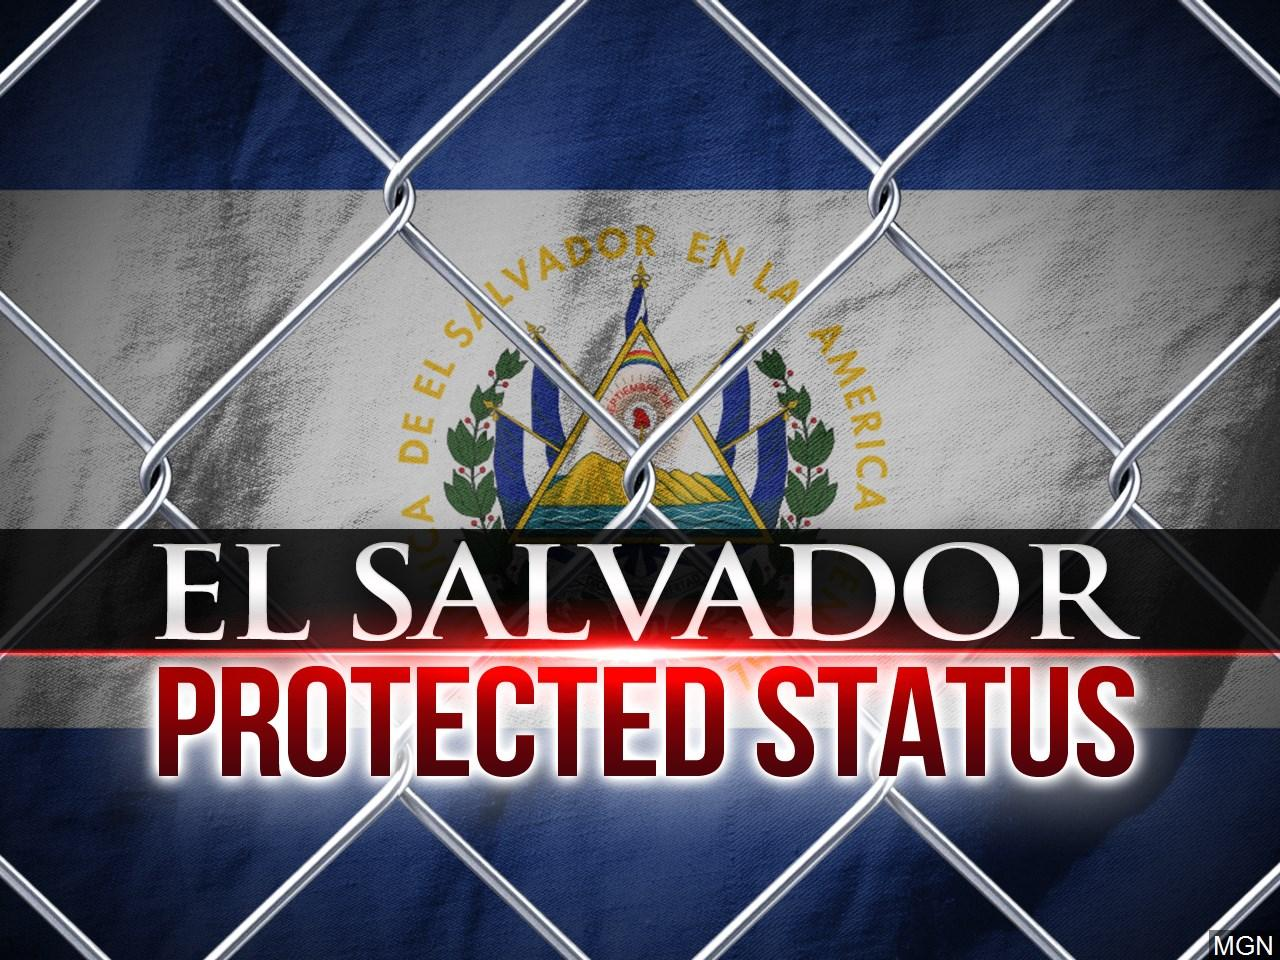 El Salvadorian immigrants in Utah fear deportation after DHS ends protected status (Photo: MGN)<p><br></p>